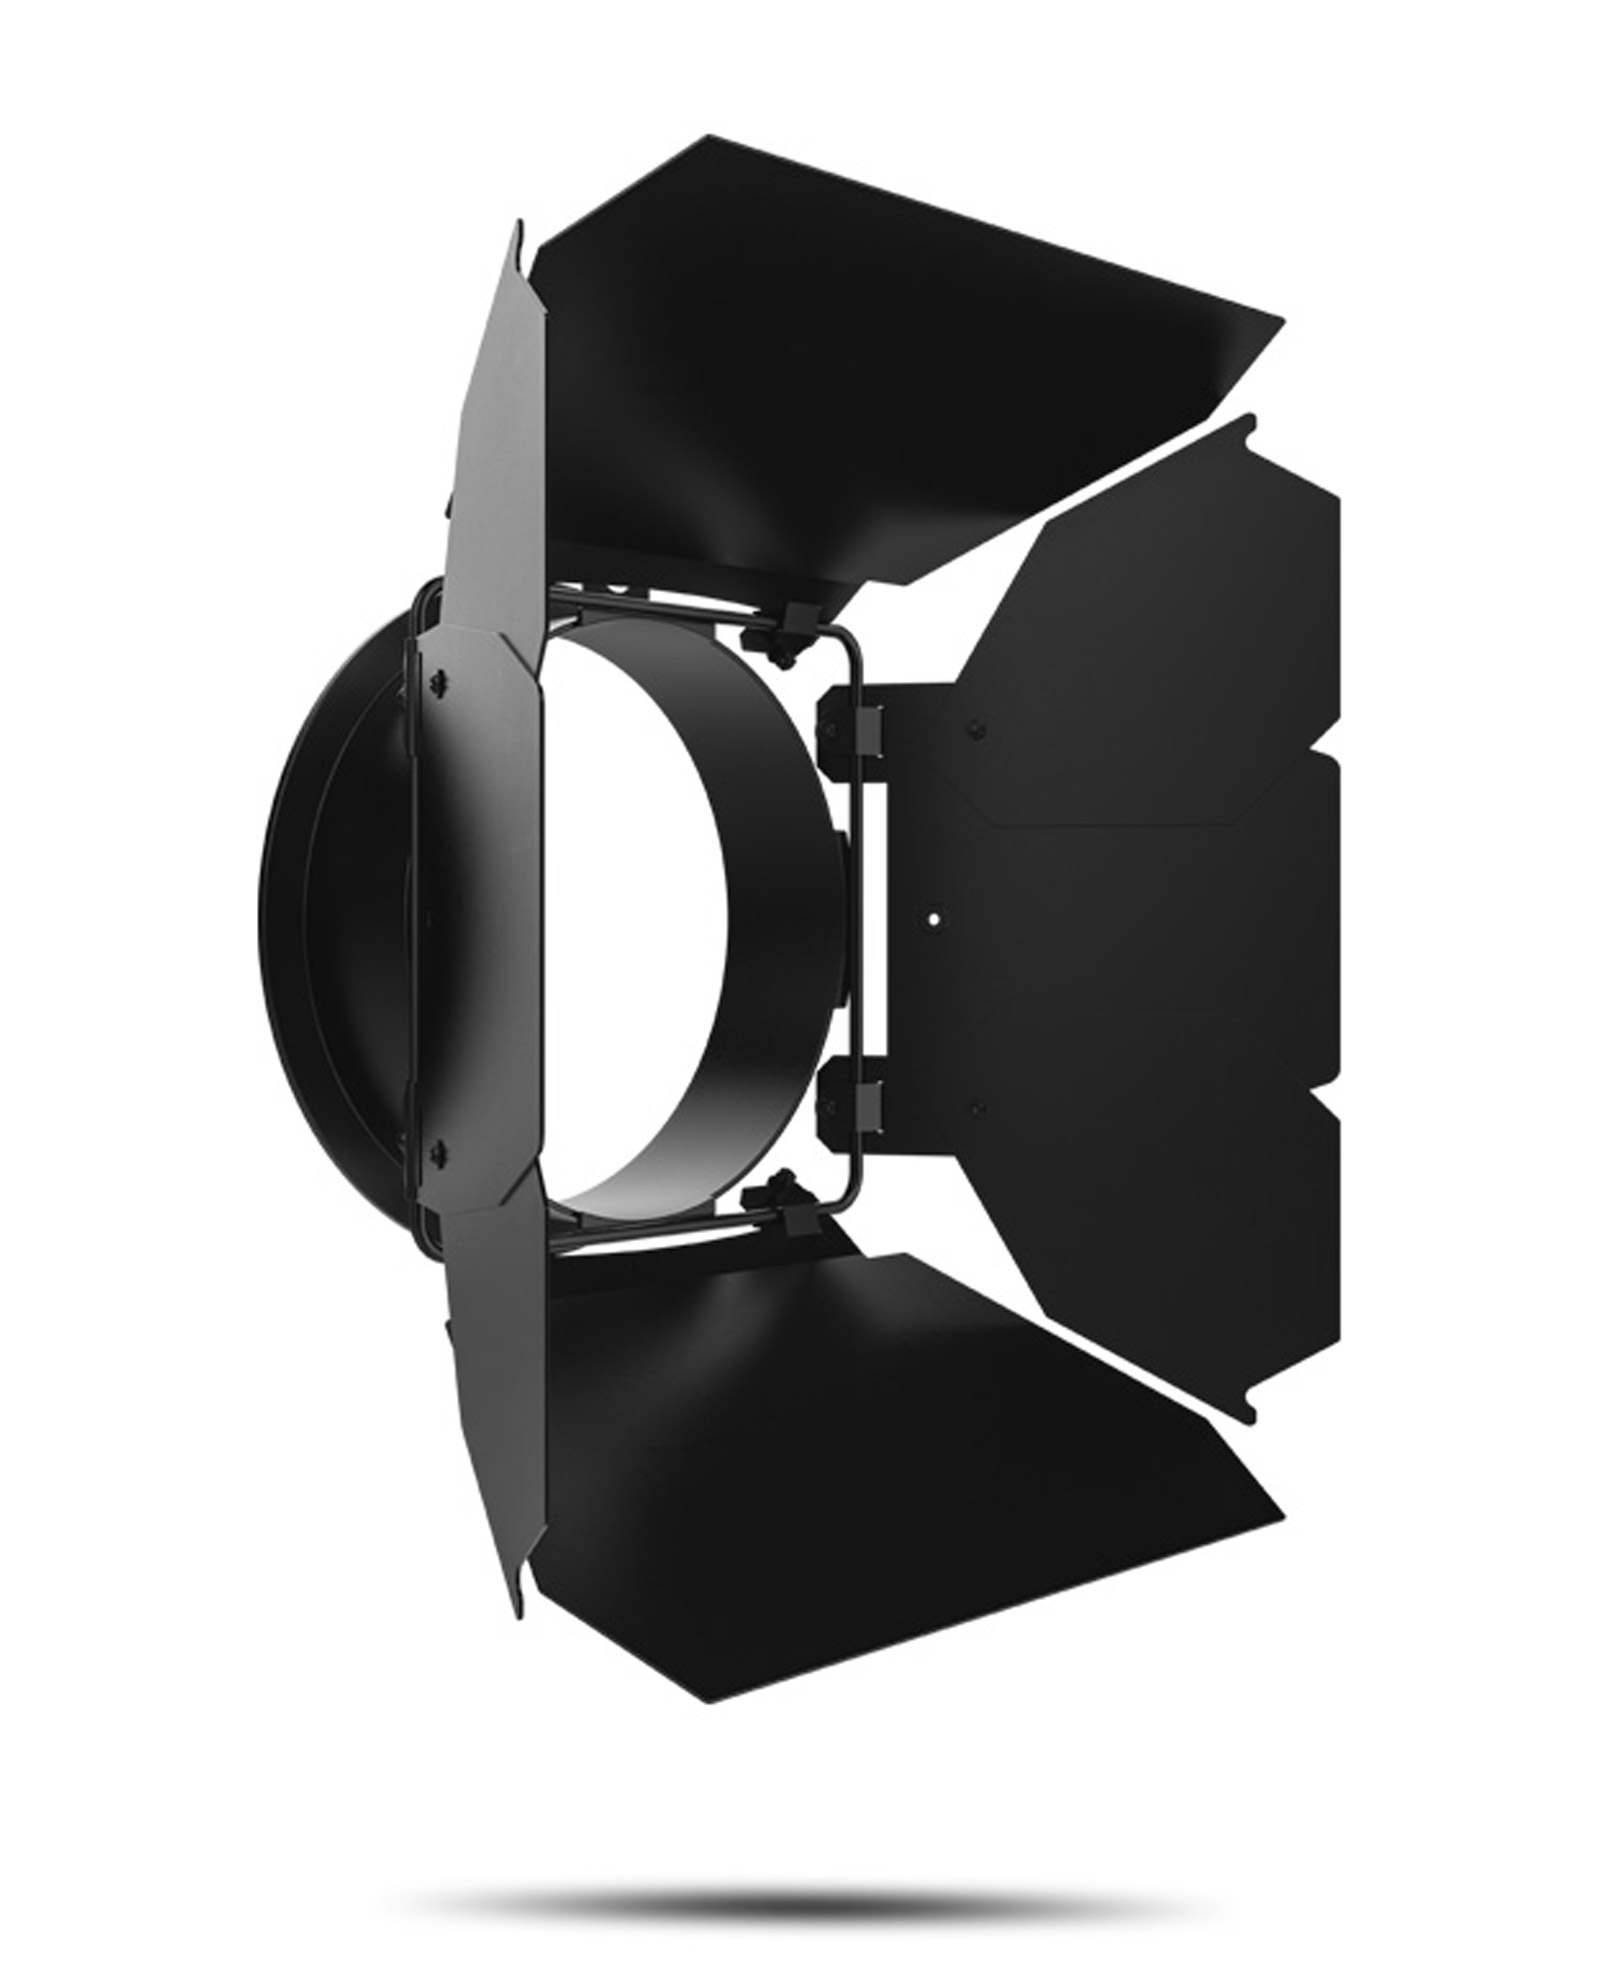 Chauvet Ovation Barn Doors 7.5